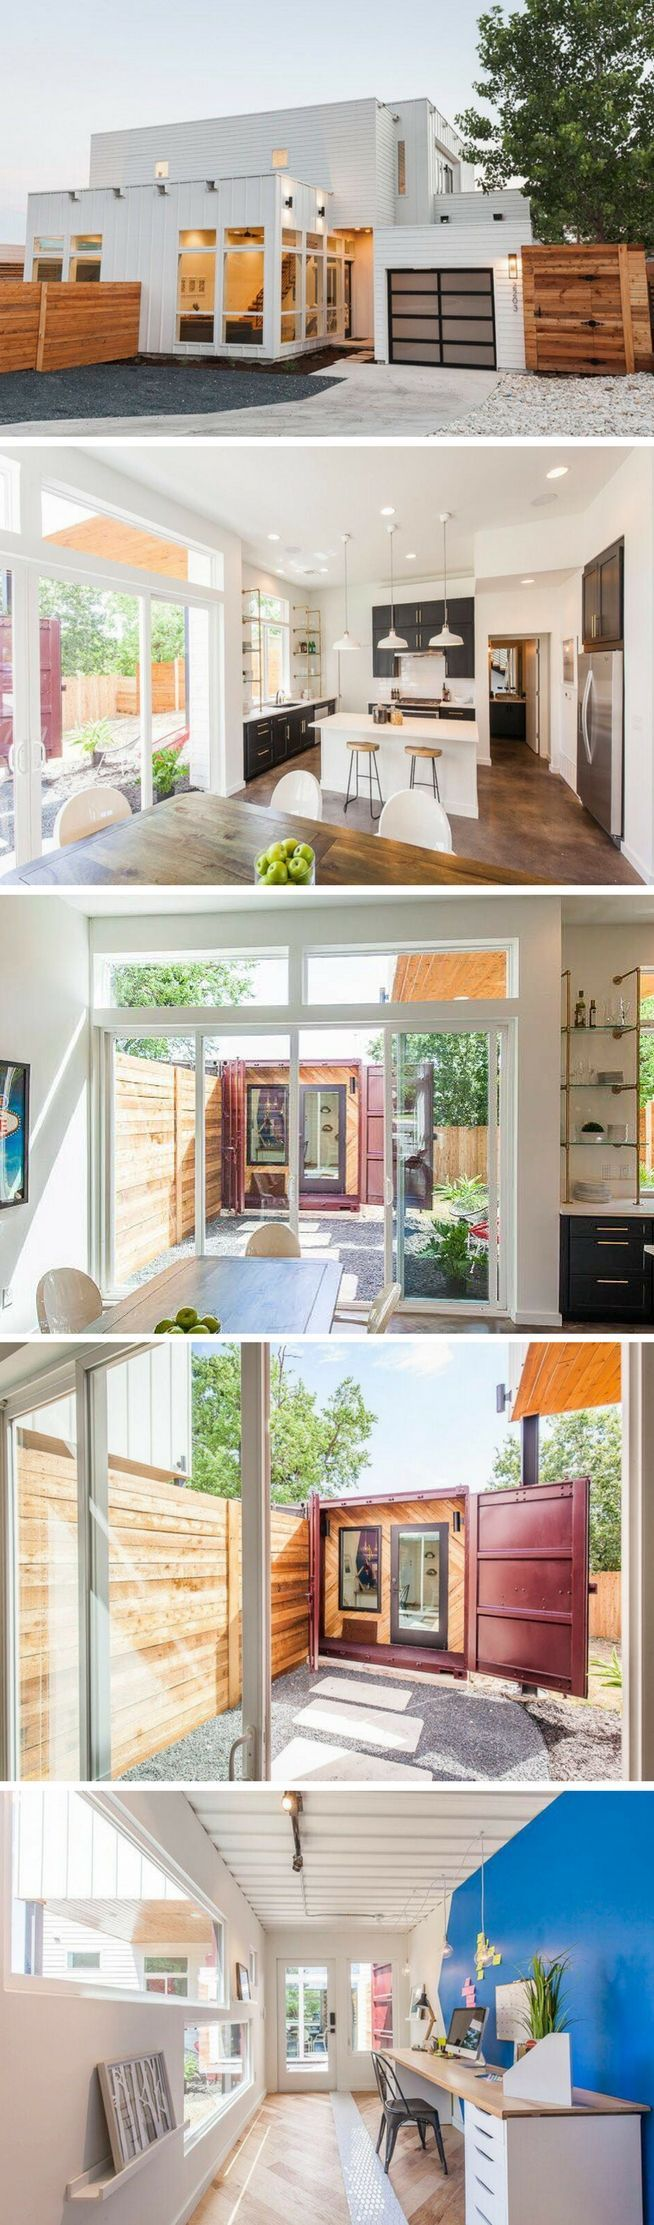 51st Home & Shipping Container Guest House There are 10 things you should do and 10 you should not do when building with shipping containers. With rising cost of building, more and more people want to do DIY projects. One of the easies ways is to add Shiiping Container Homes to your DIY list.